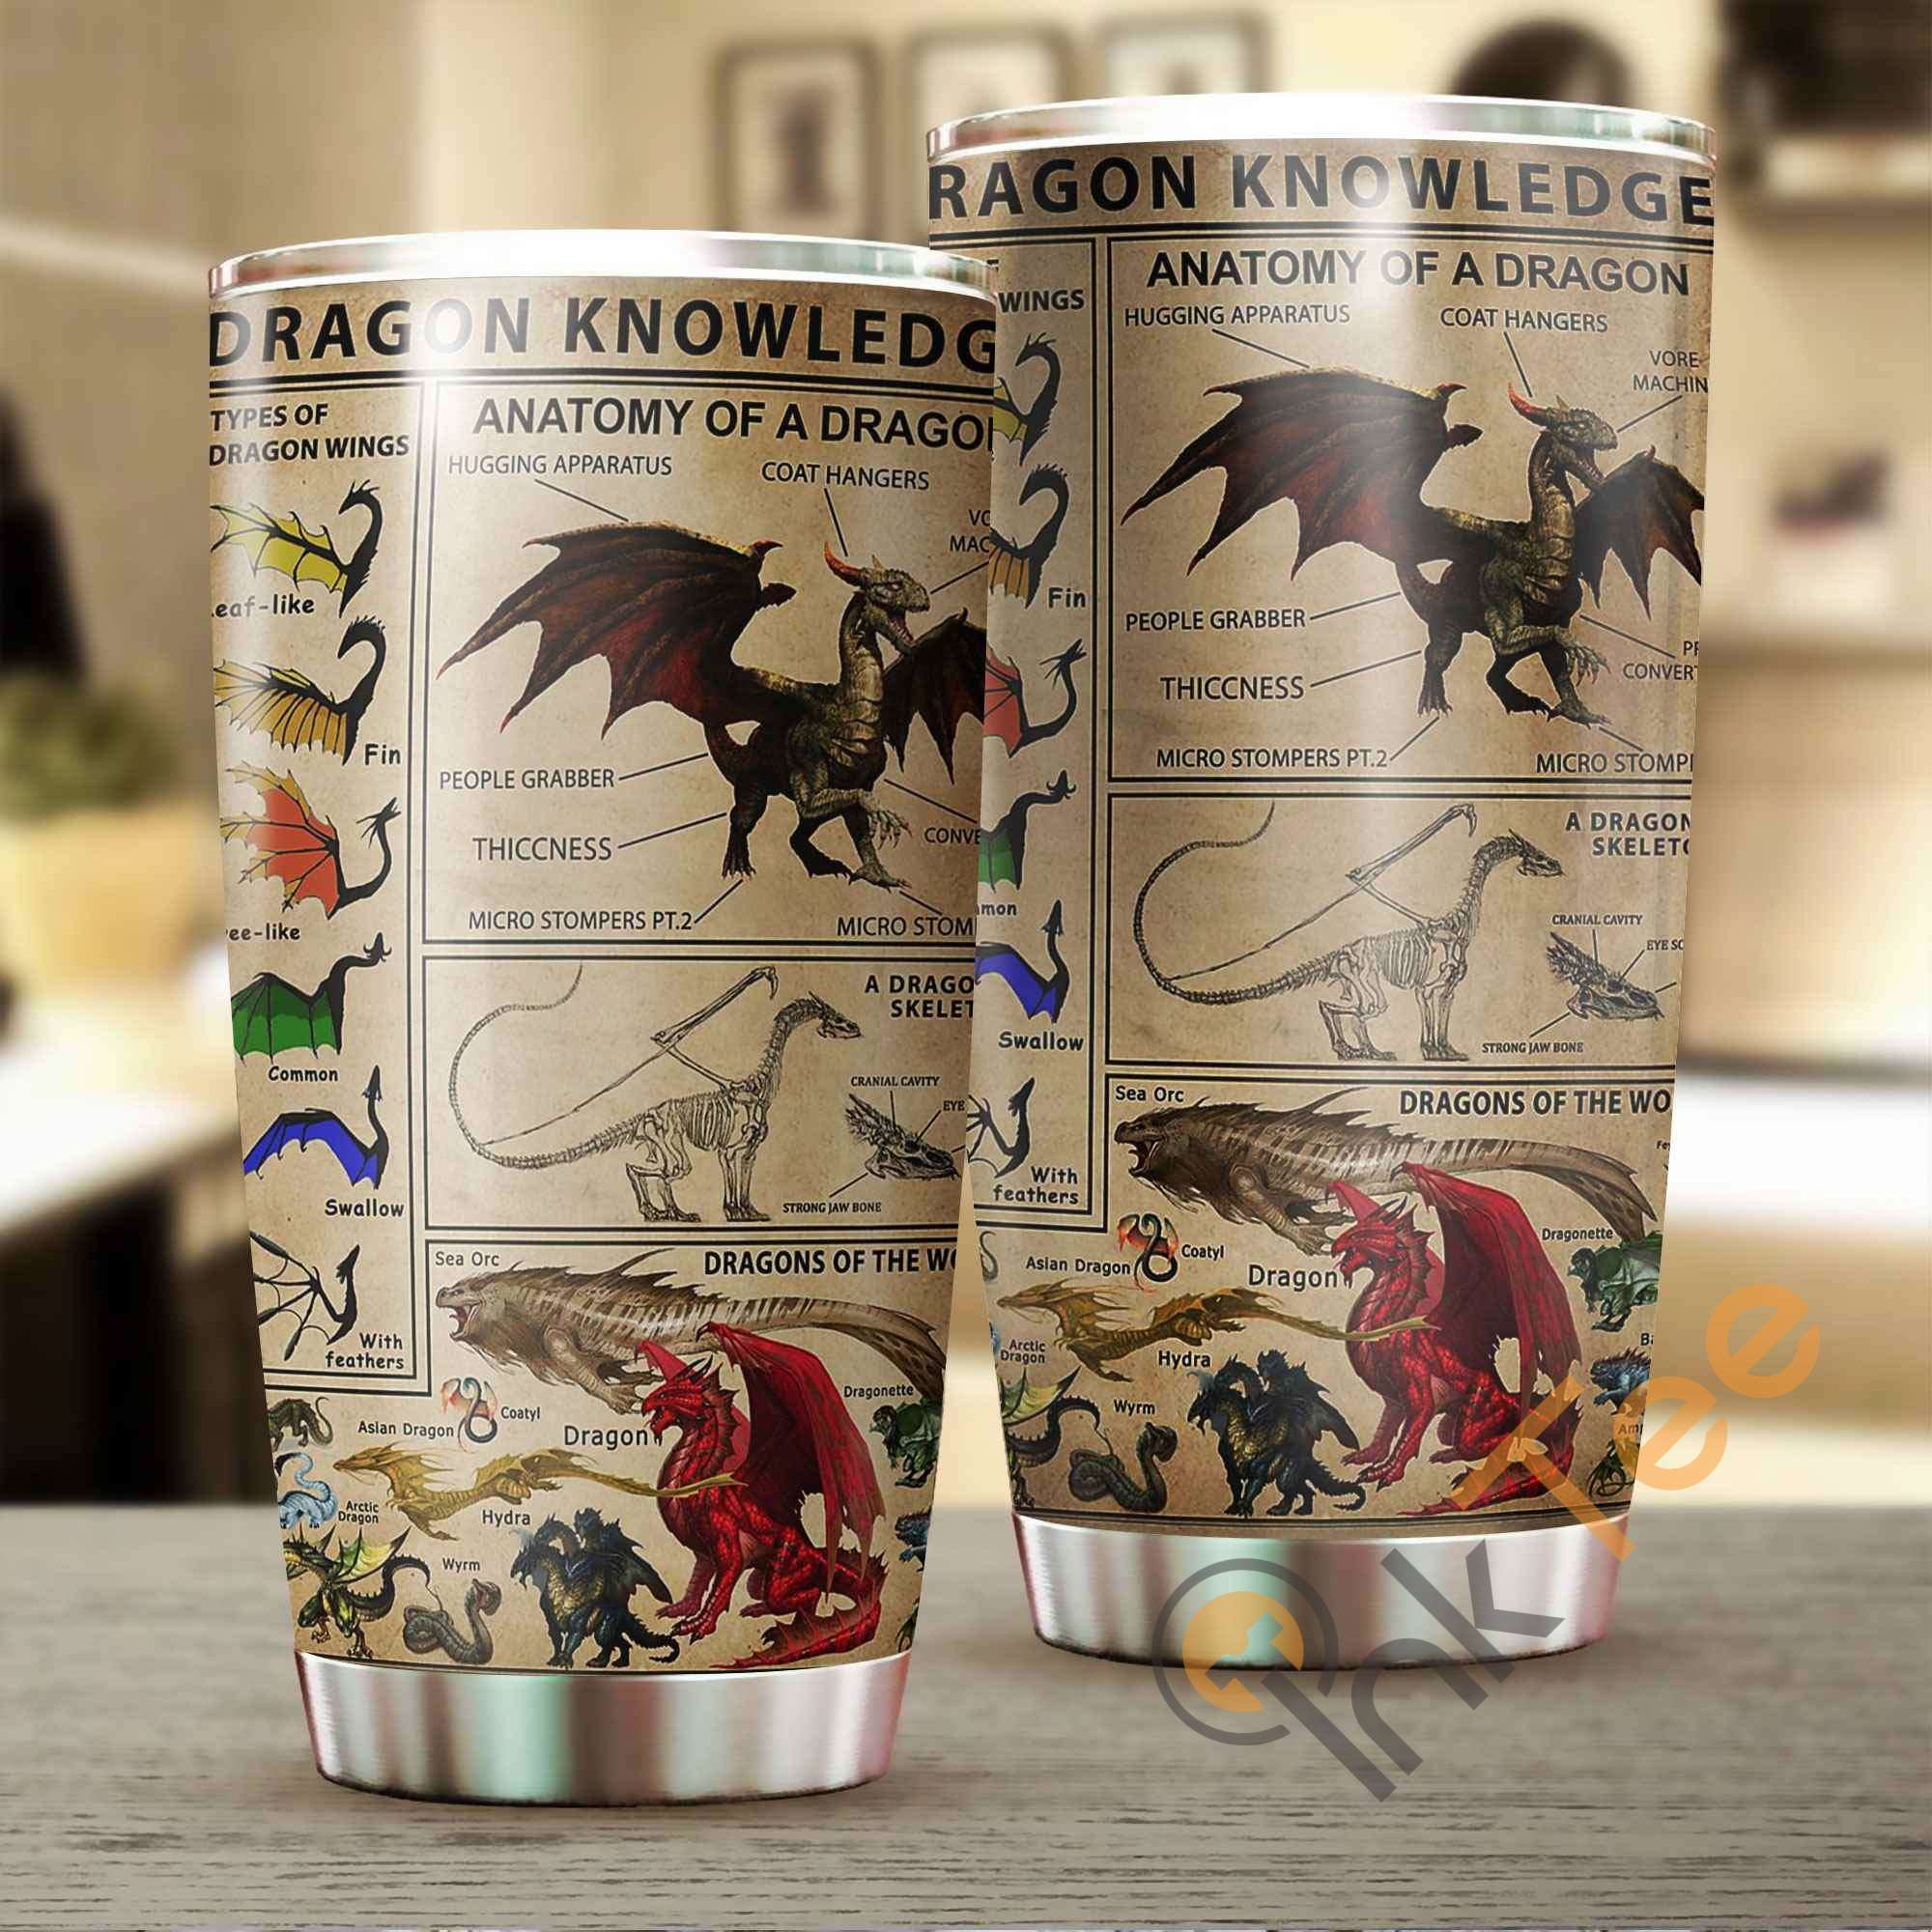 Dragon Knowledge Amazon Best Seller Sku 2985 Stainless Steel Tumbler